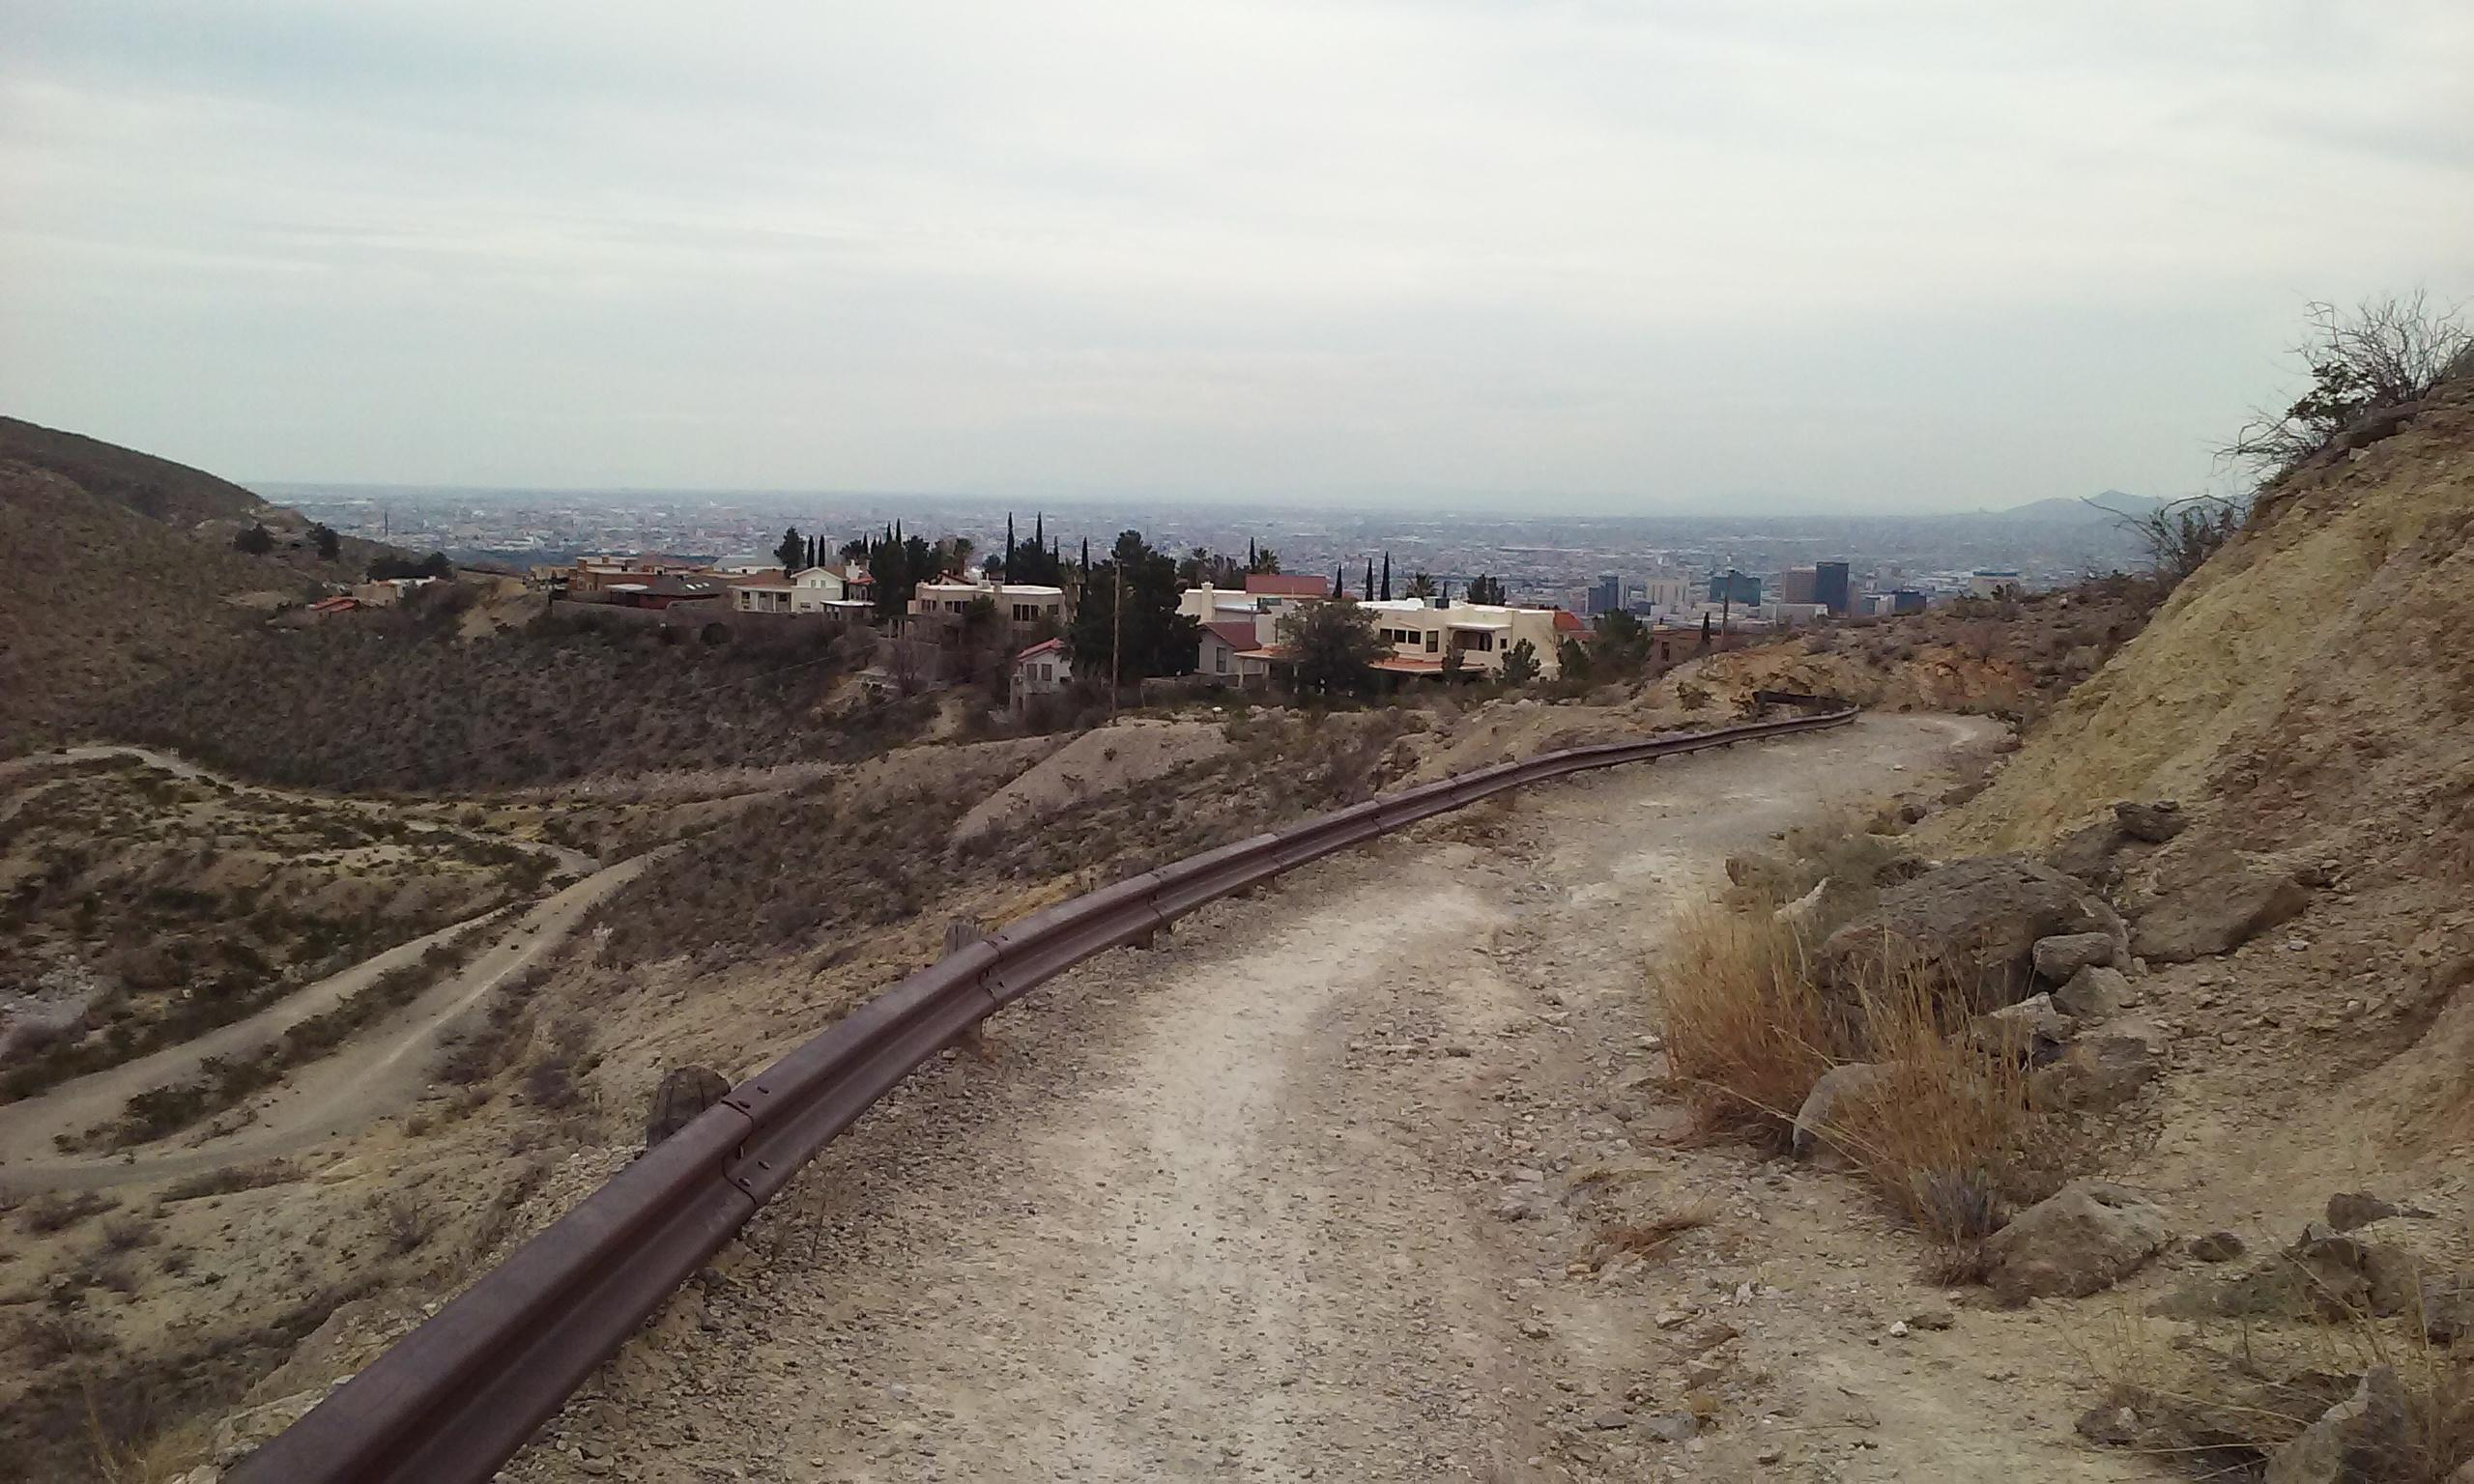 Downtown El Paso from the hiking trail at Palisades.